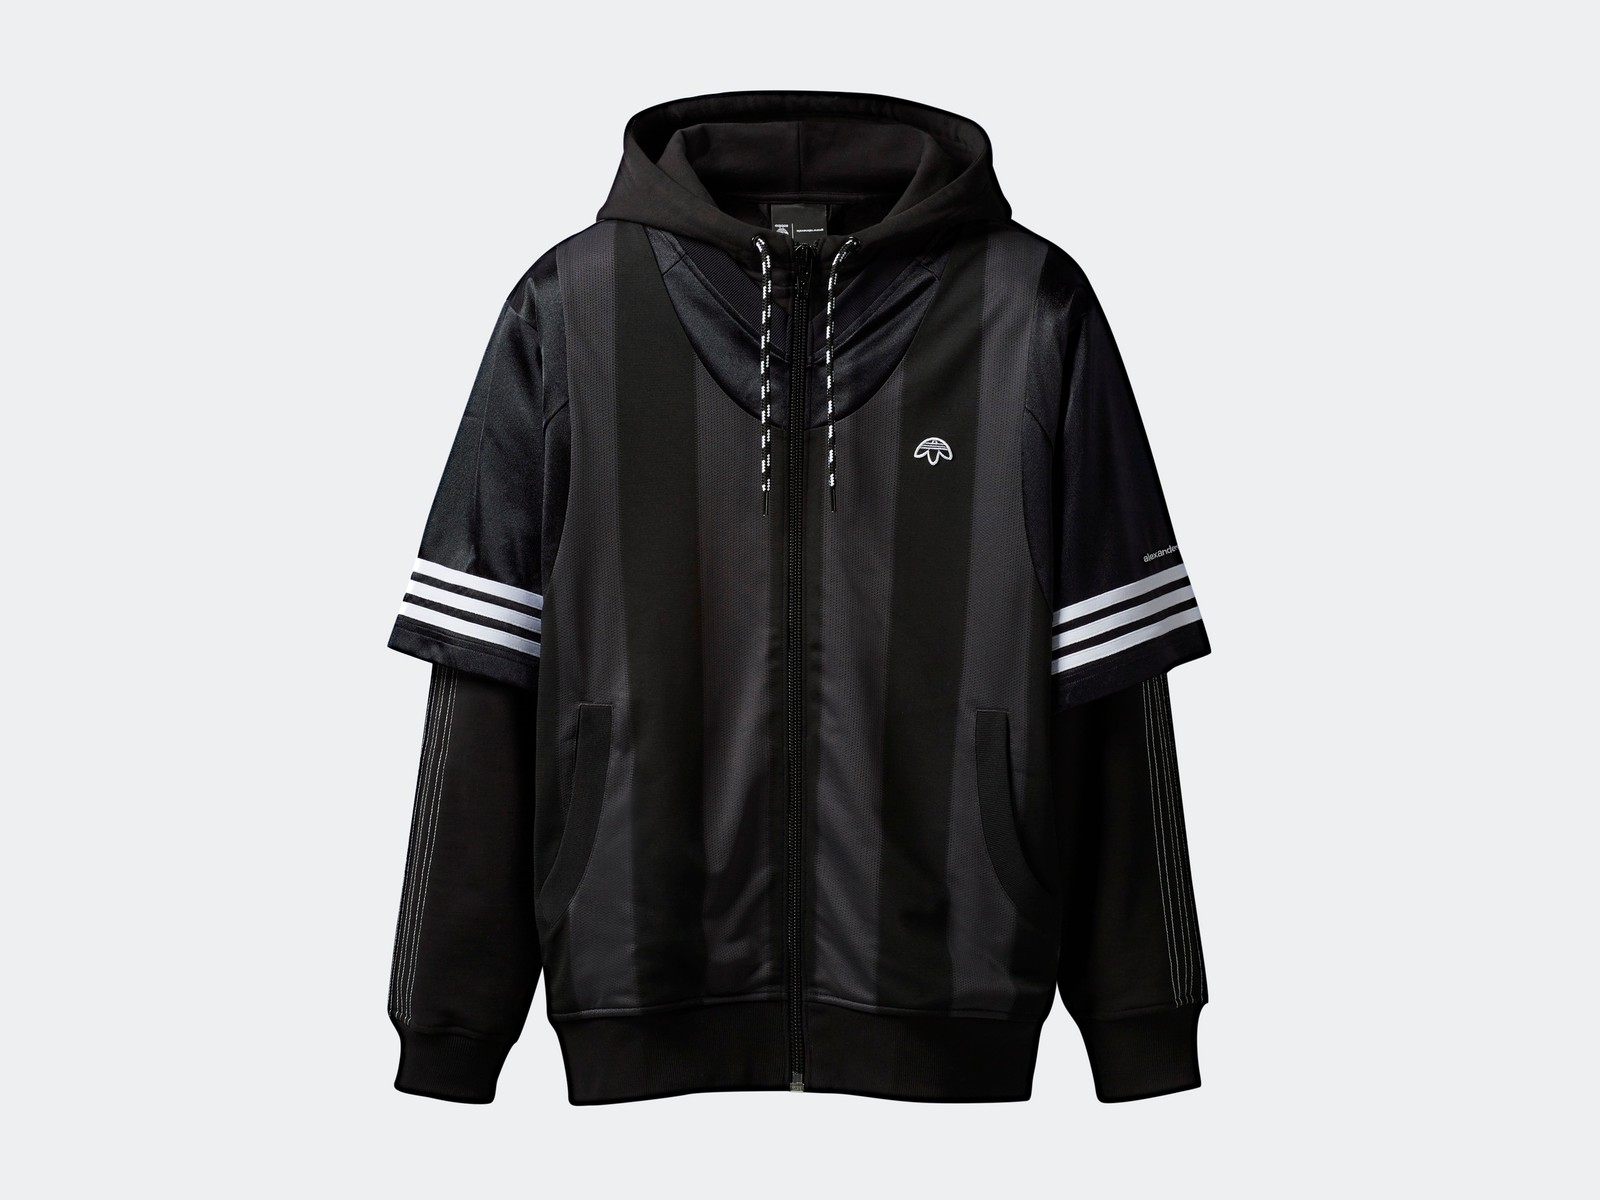 adidas Originals by Alexander Wang 聯乘系列 Season 5 正式發佈